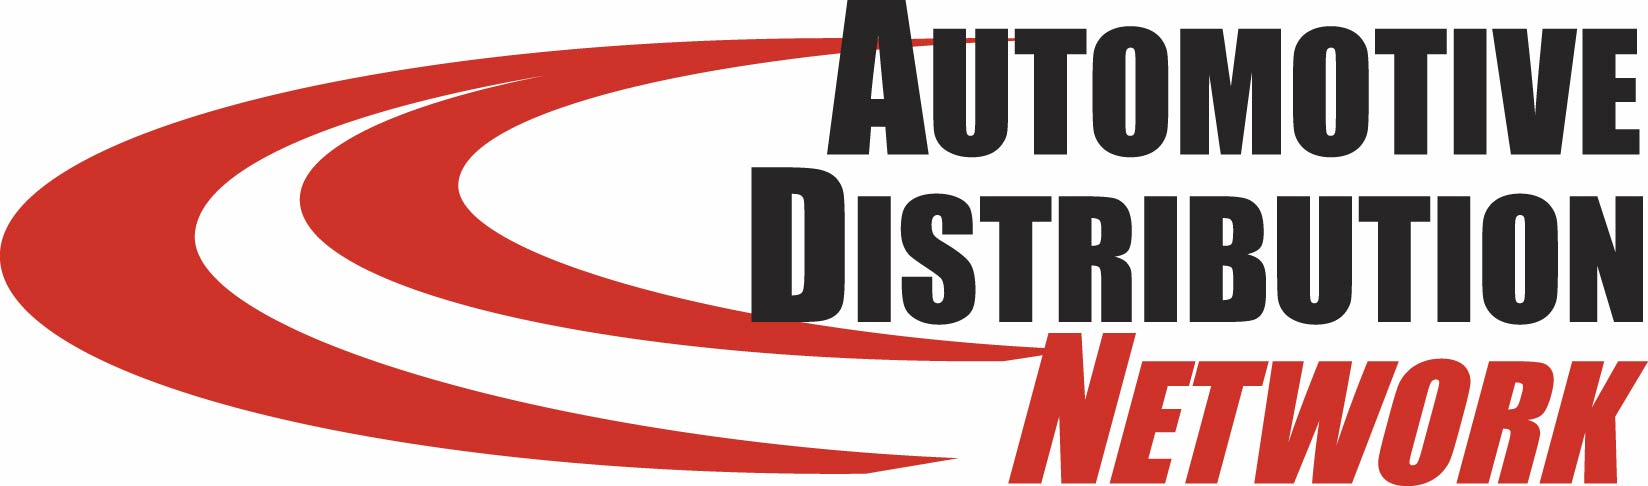 Automotive Distribution Network